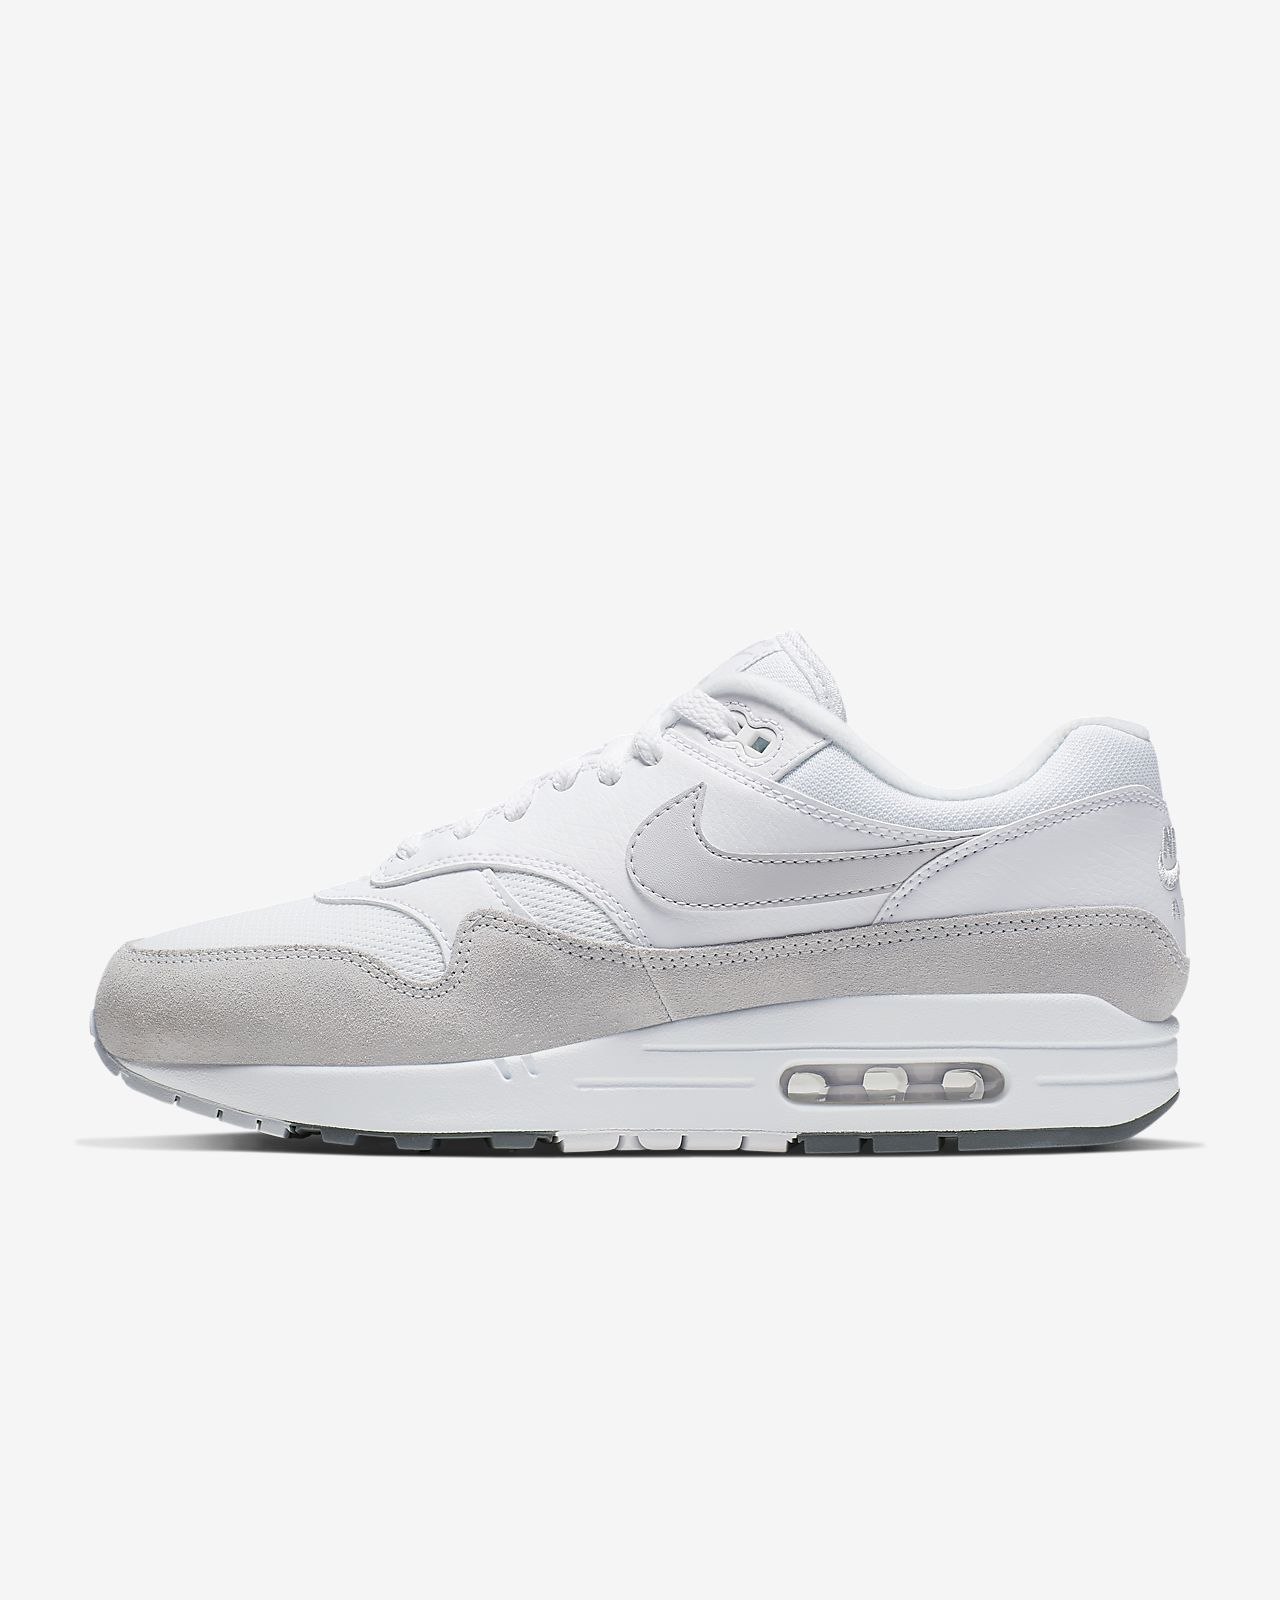 ad84141684 Nike Air Max 1 Men's Shoe. Nike.com